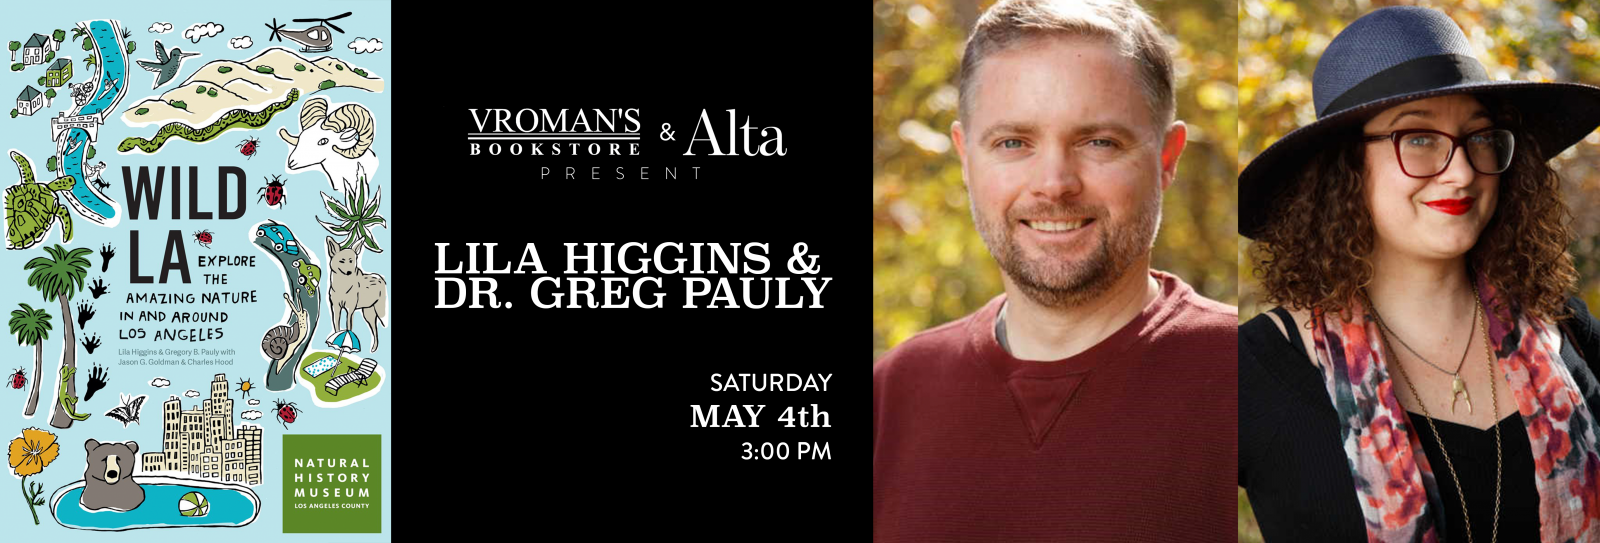 Lila Higgins and Greg Pauly Book signing